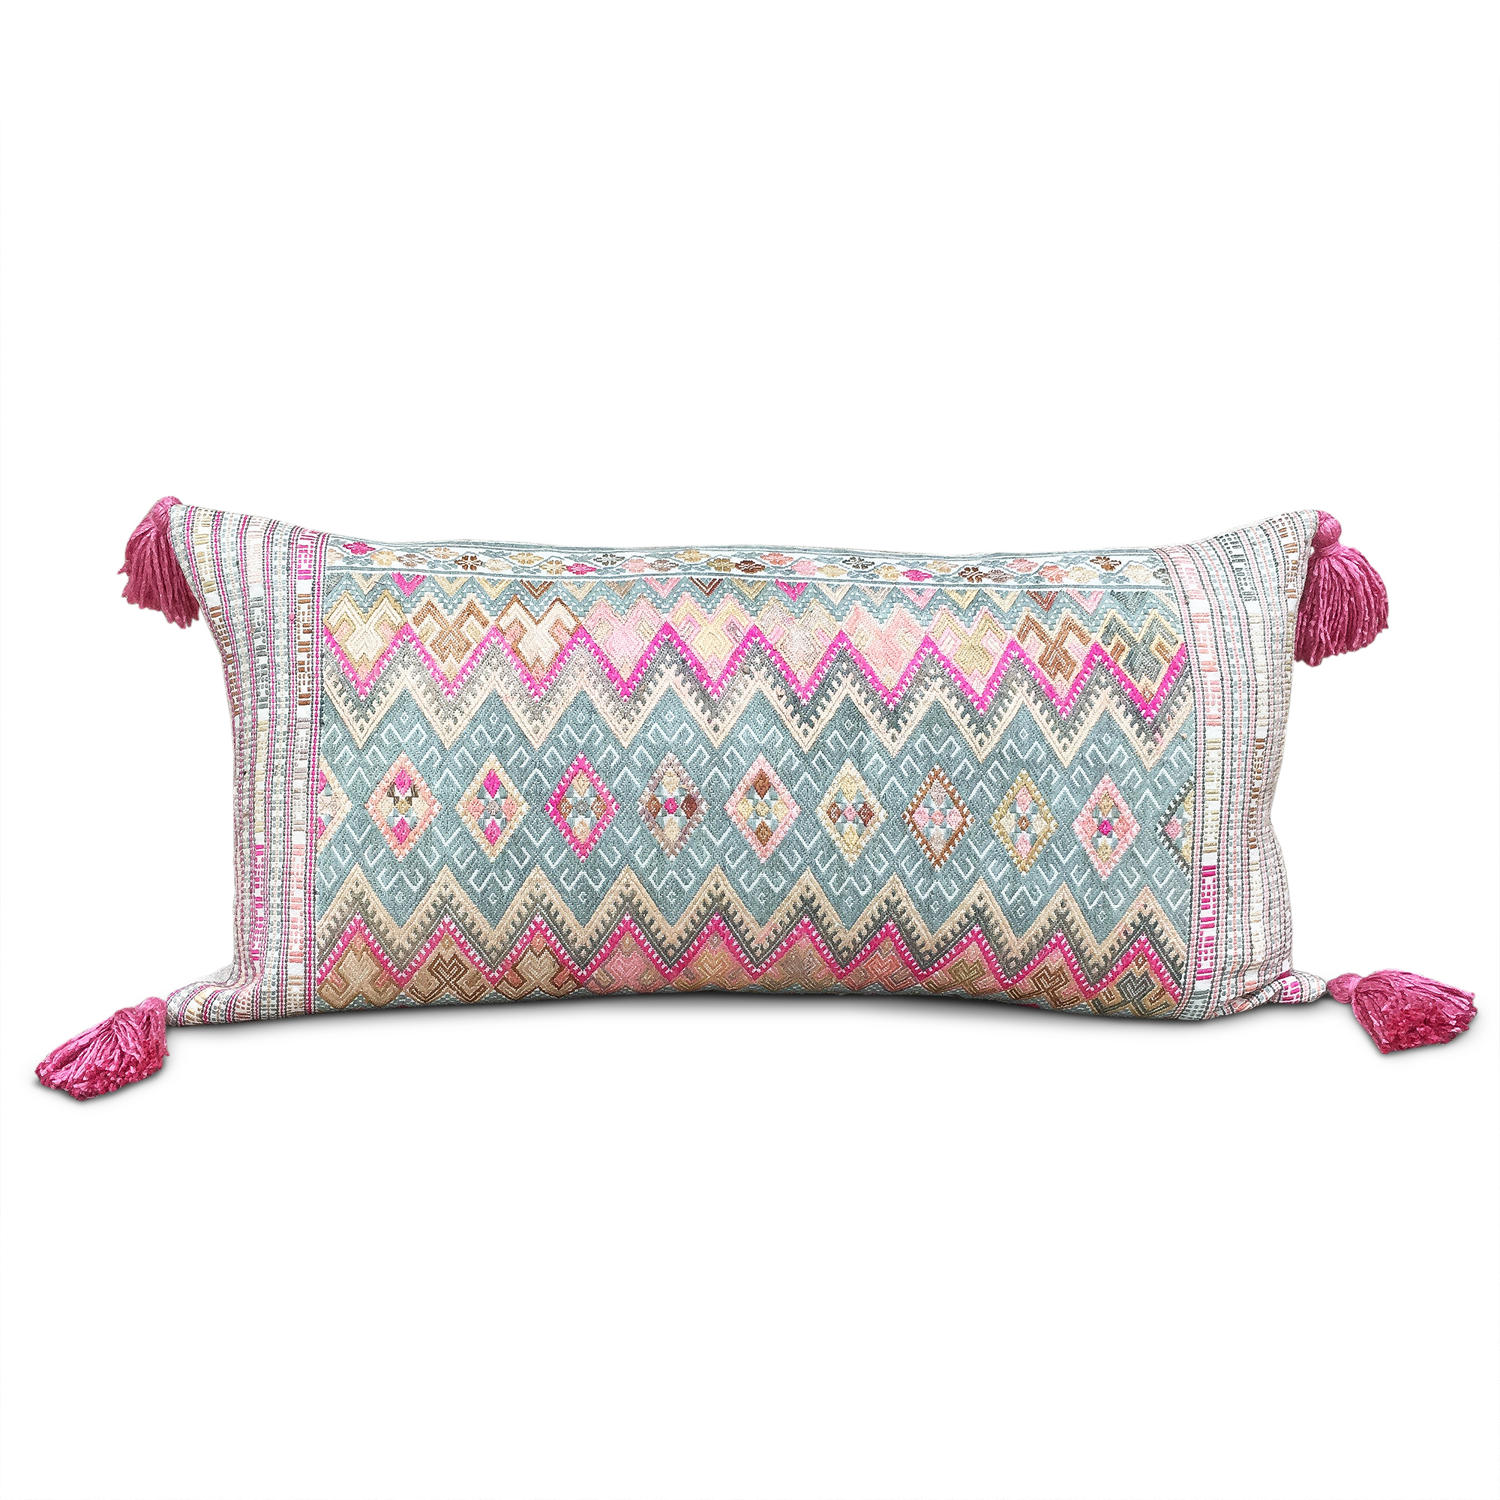 Minority Cushion with Tassels